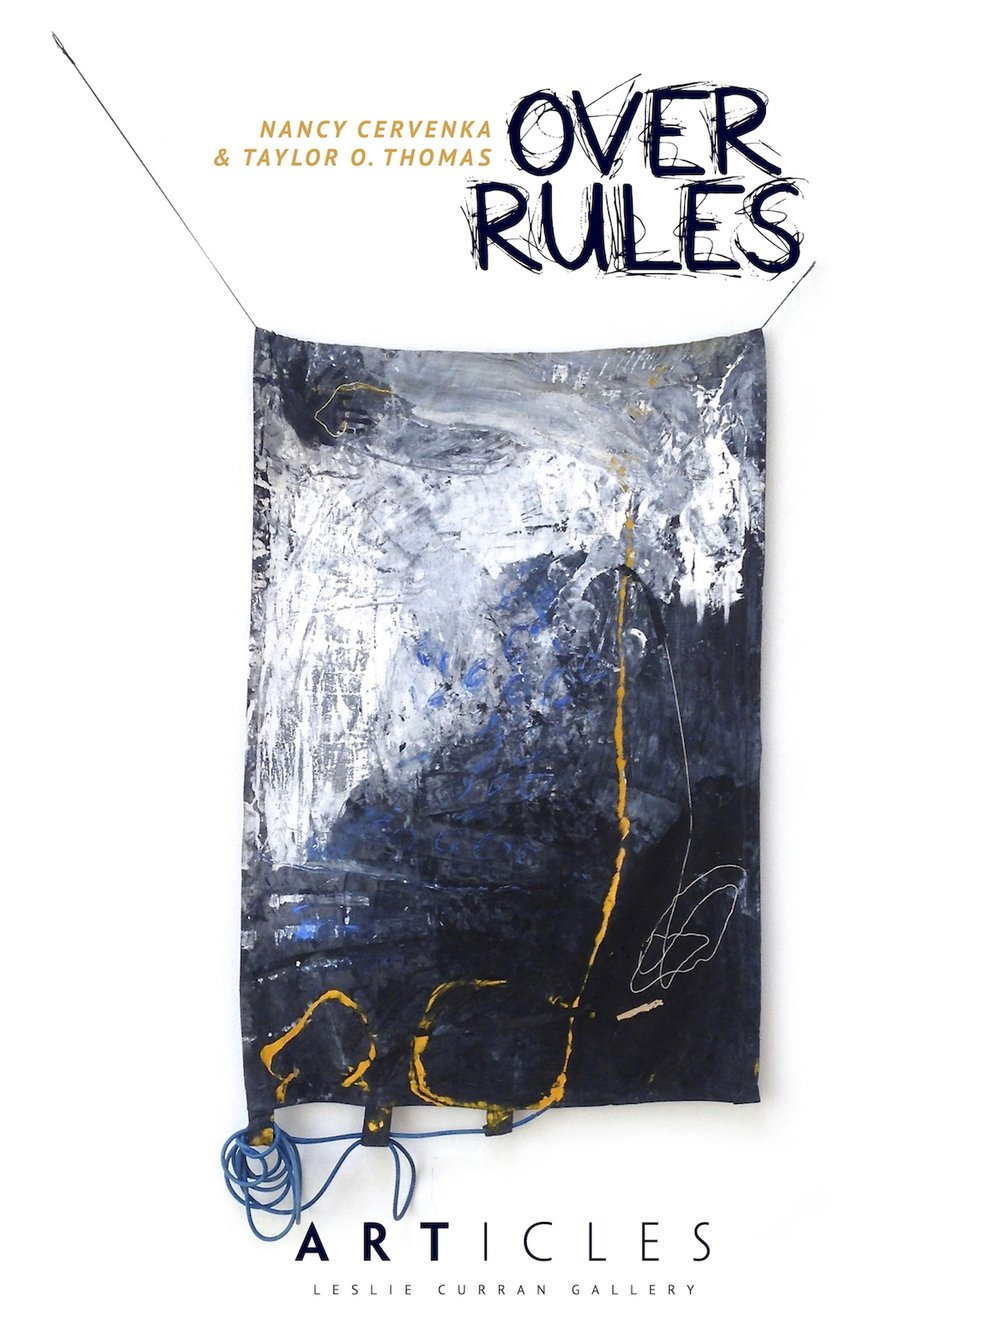 Over Rules - February 11 - March 10, 2016 Select works from my Autobiographies series will be shown at ARTicles Gallery in St. Petersburg, FL. The two person exhibition will include my paintings alongside the alluring sculptures of Nancy Cervenka.